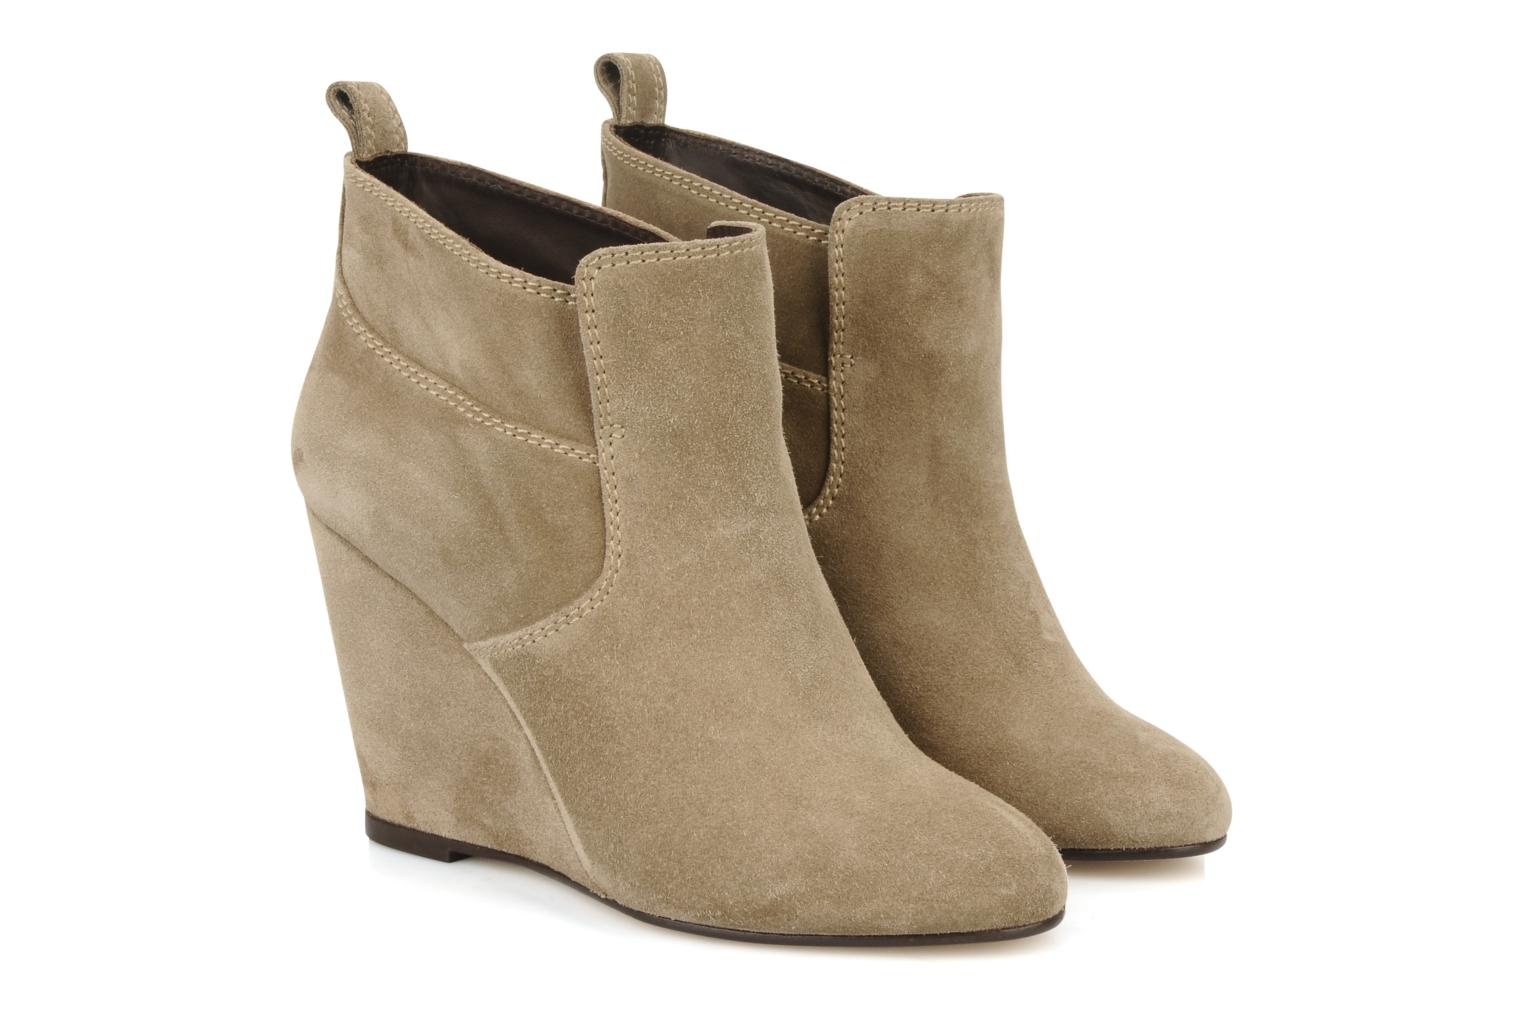 Ankle boots Tila March Wedge booty stitch suede Beige 3/4 view